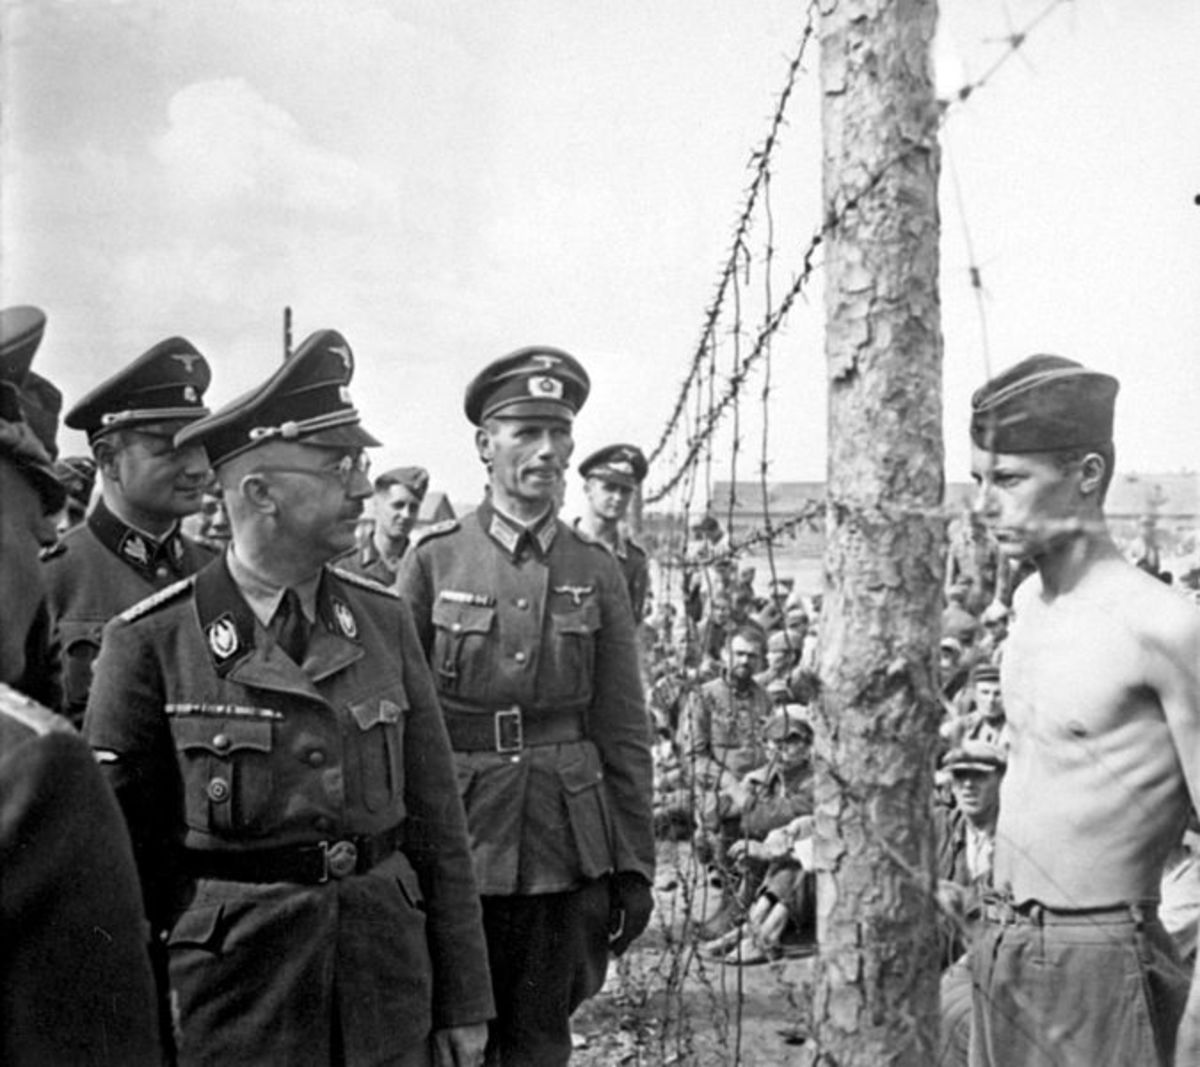 This image is believed to be Horace Greasley confronting Himmler and asking for better food. He took his shirt off to show how scrawny he was. The food did not improve.